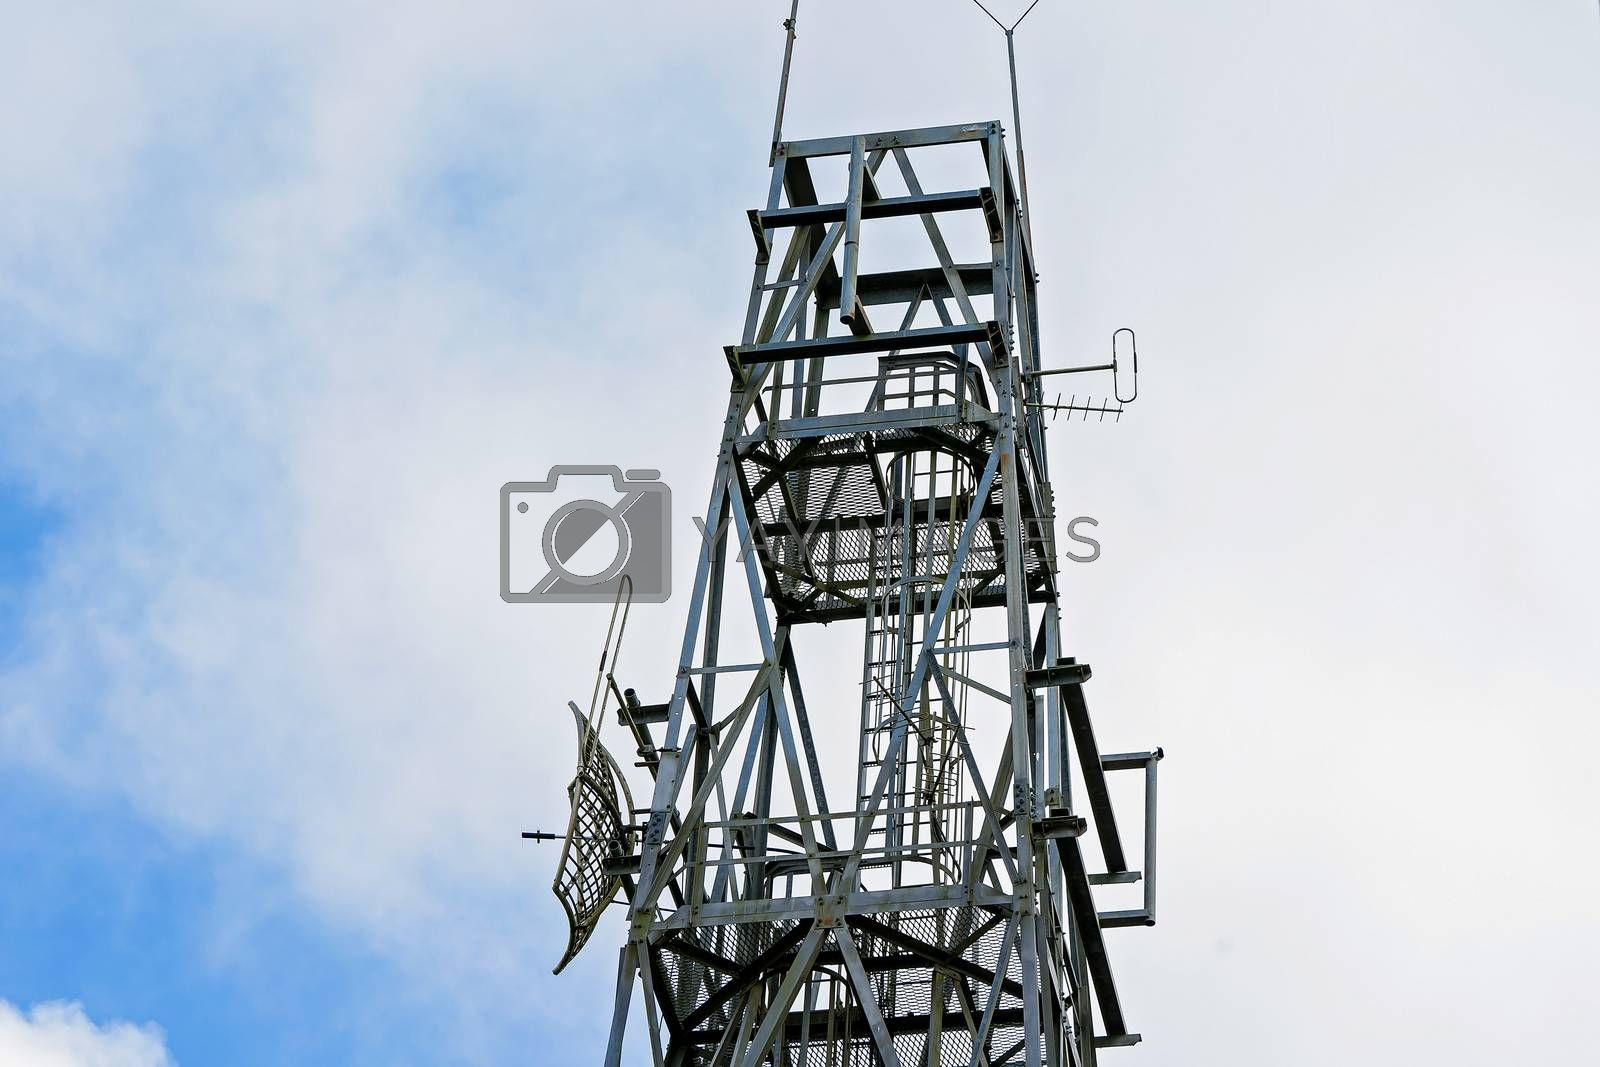 Modern technology communication towers against a cloudy blue sky